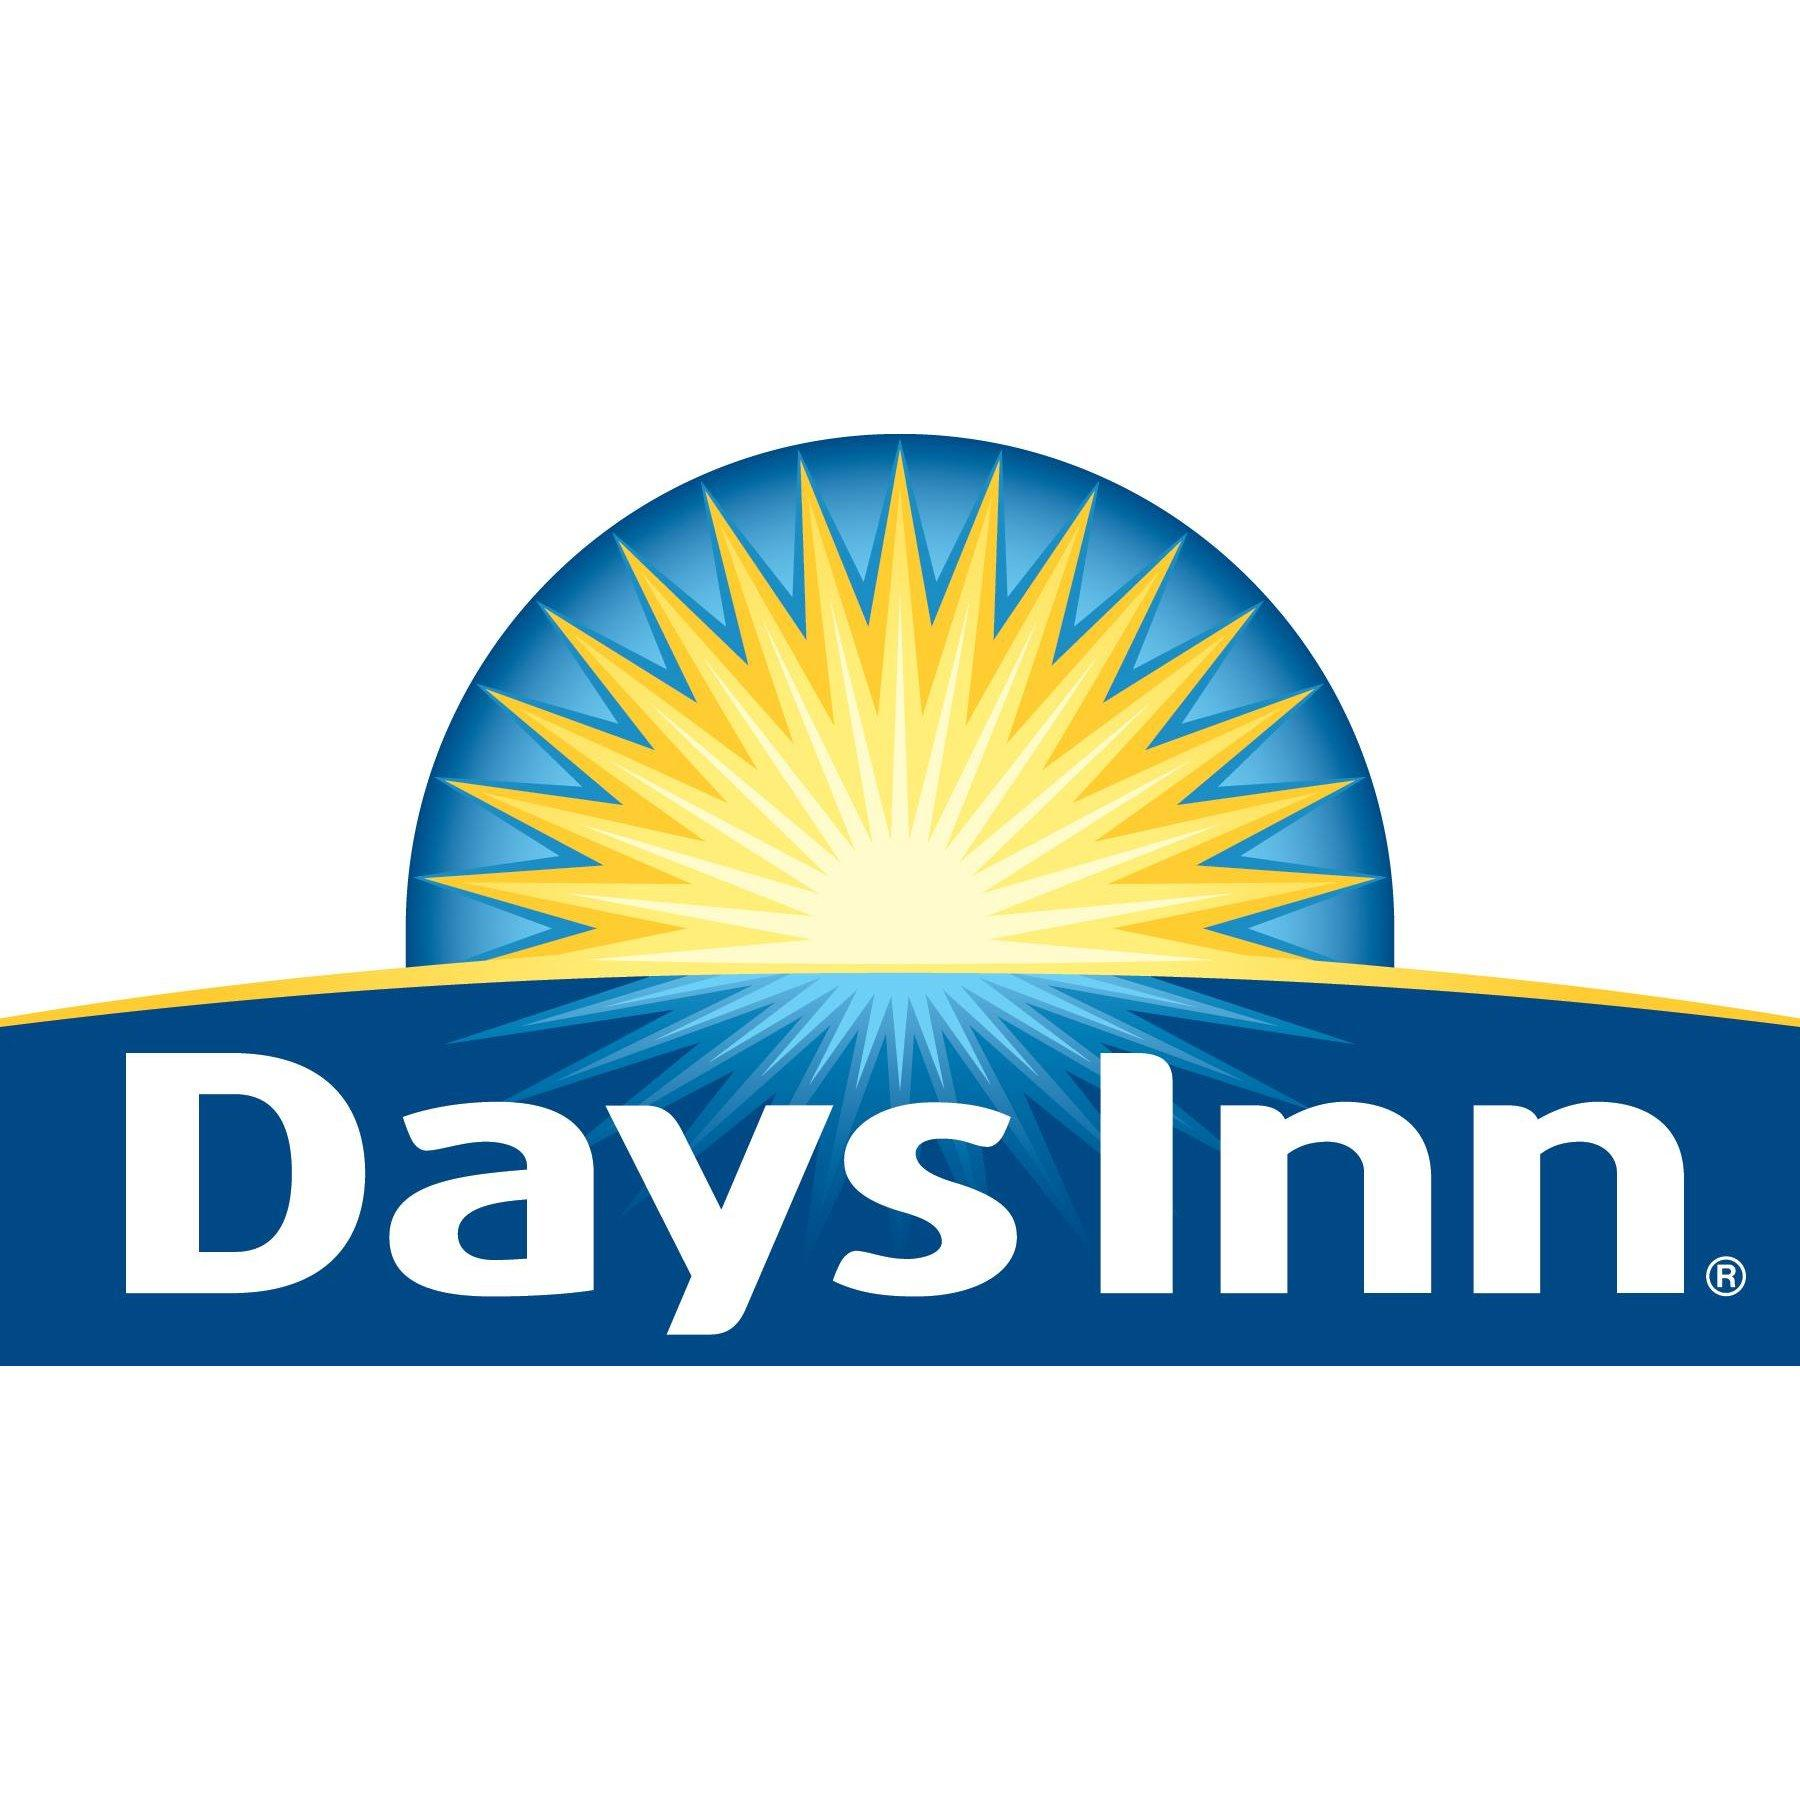 Days Inn - Evanston, WY - Party & Event Planning